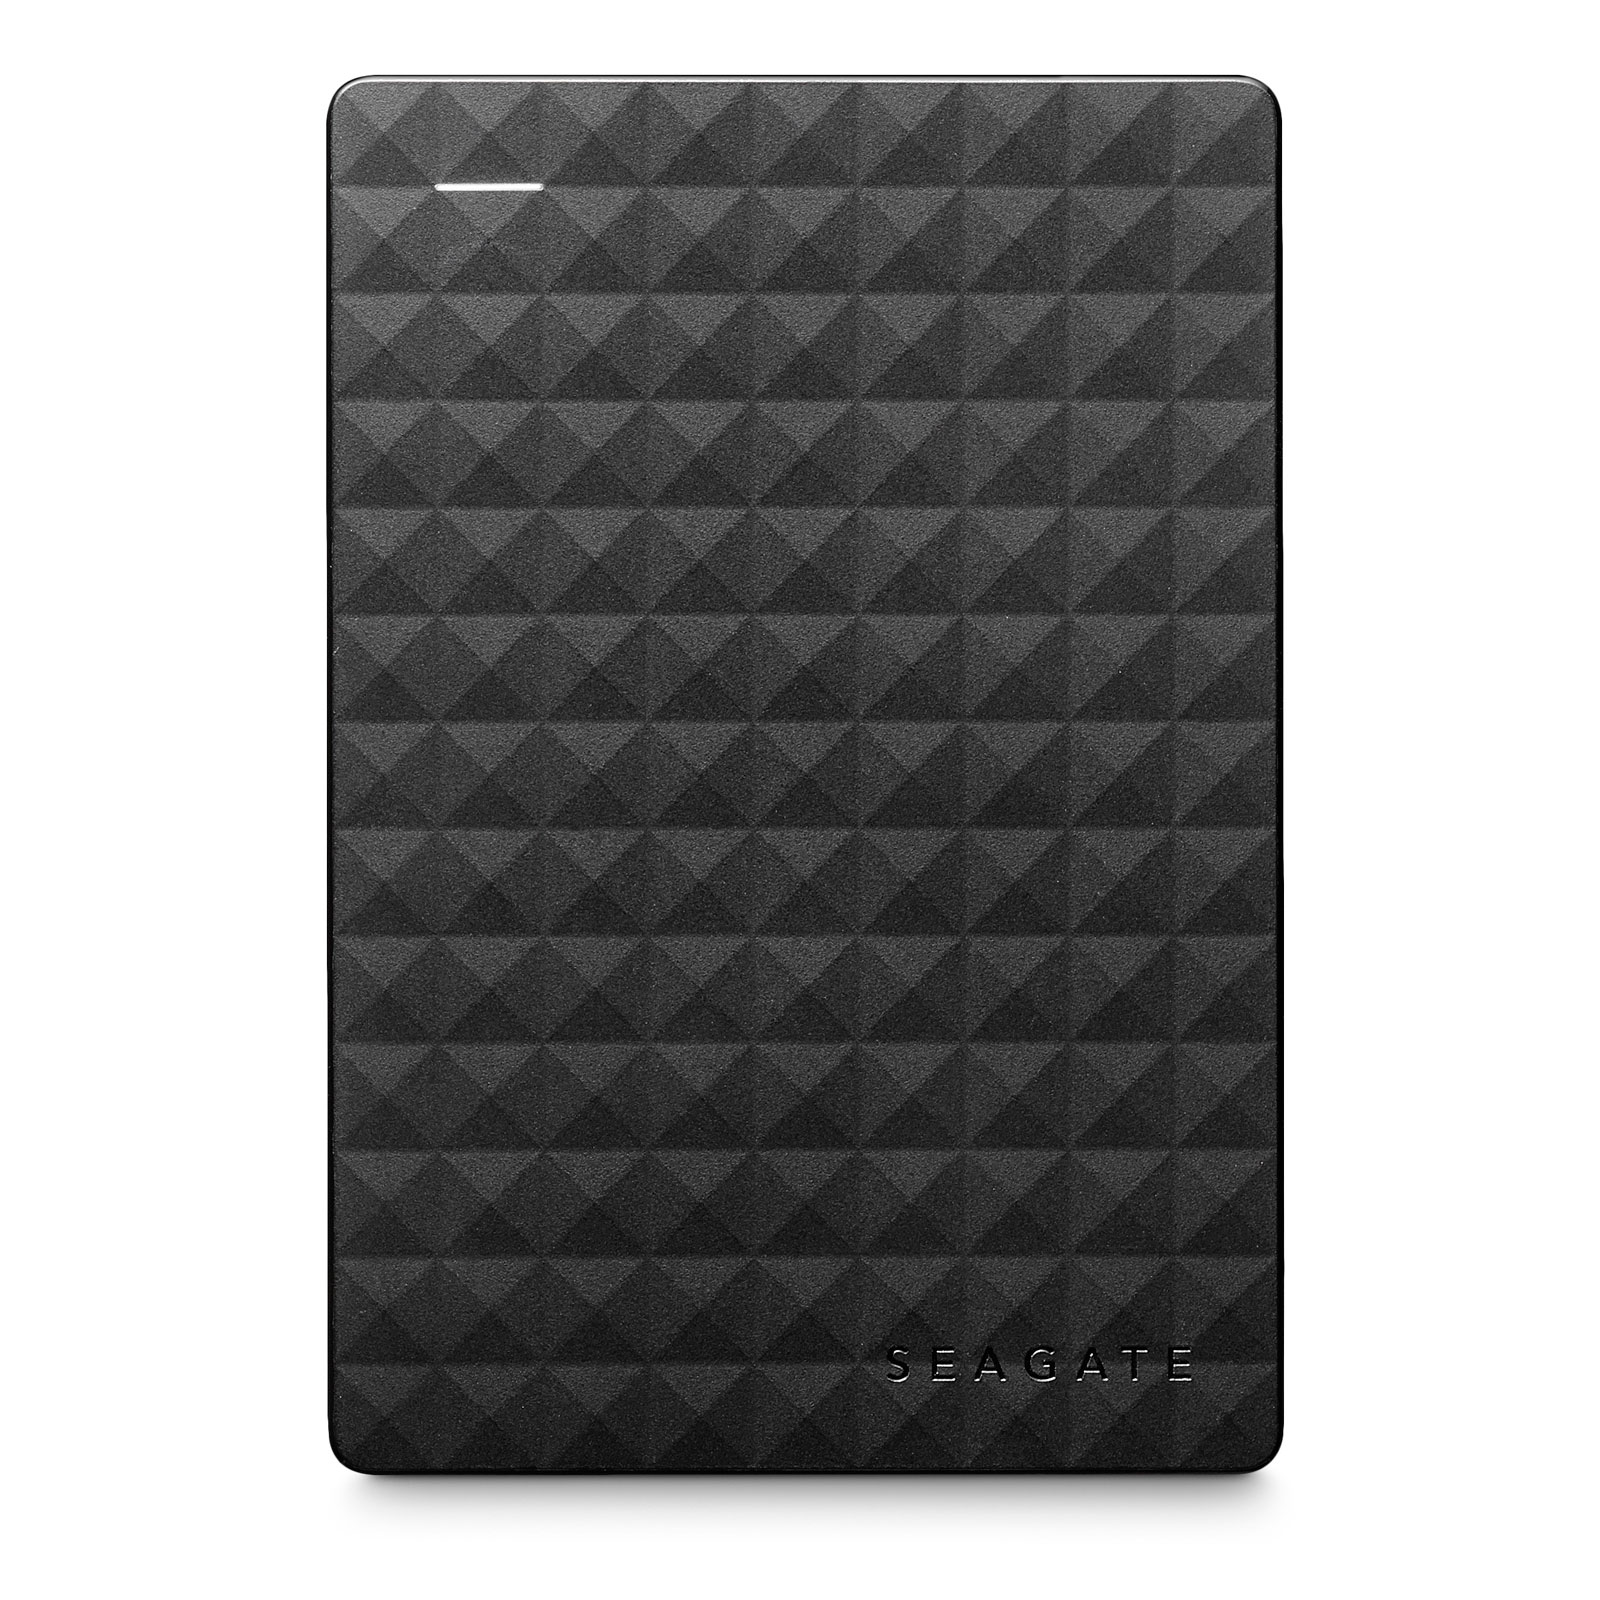 seagate portable expansion 1 to disque dur externe. Black Bedroom Furniture Sets. Home Design Ideas